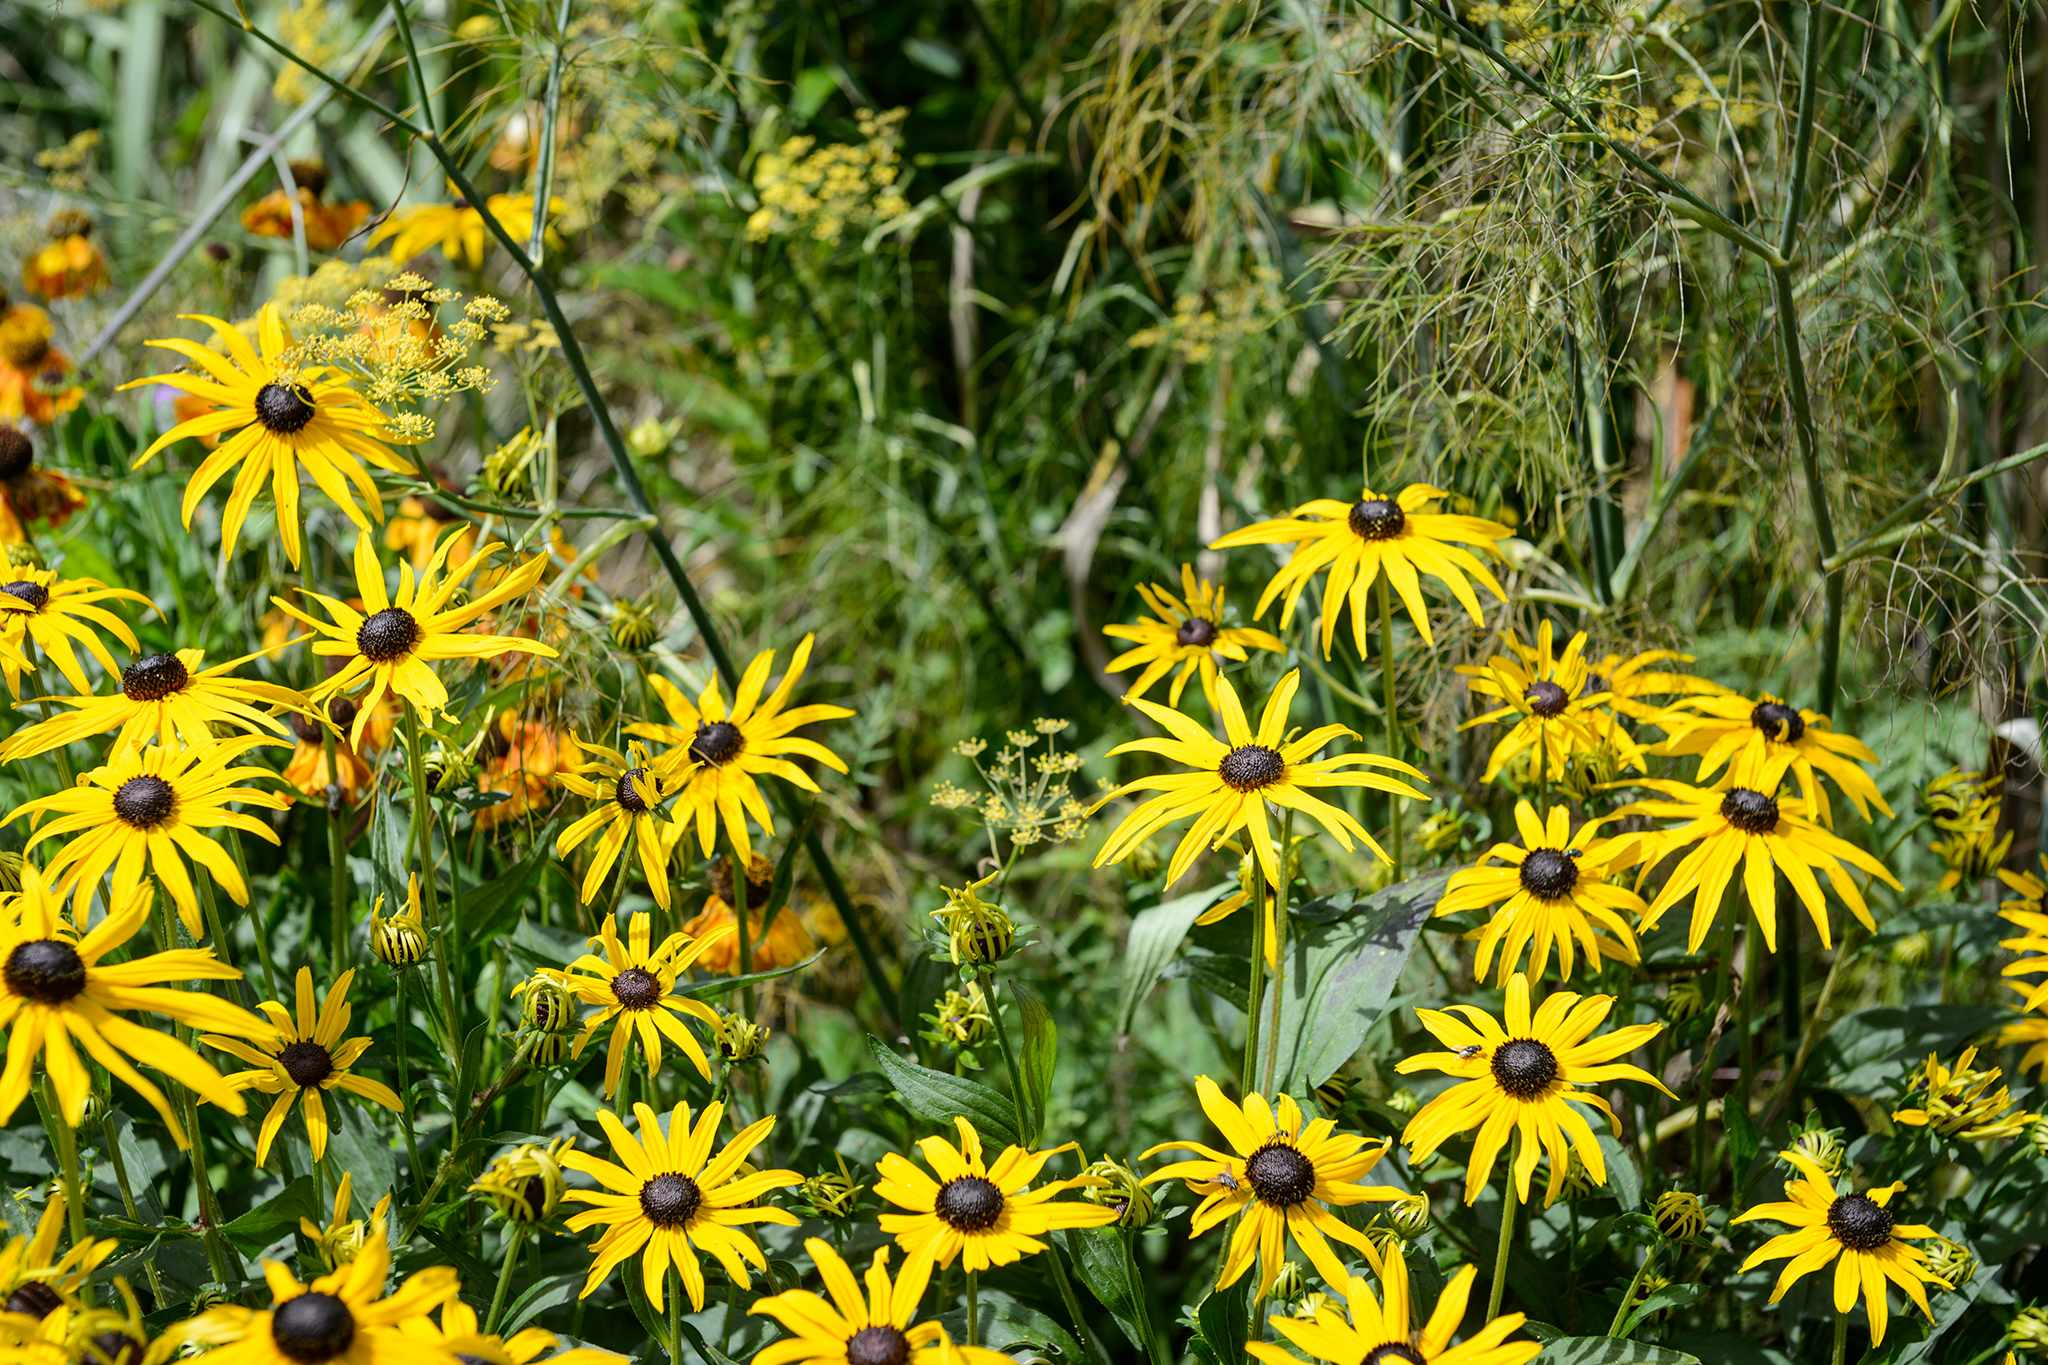 Close up Rudbeckia fulgida var sullivantii Goldsturm and Fennel in the Grass Borders 100817 10082017 10/08/17 10/08/2017 10 10th August 2017 Summer Monty Don Longmeadow photographer Jason Ingram horizontal